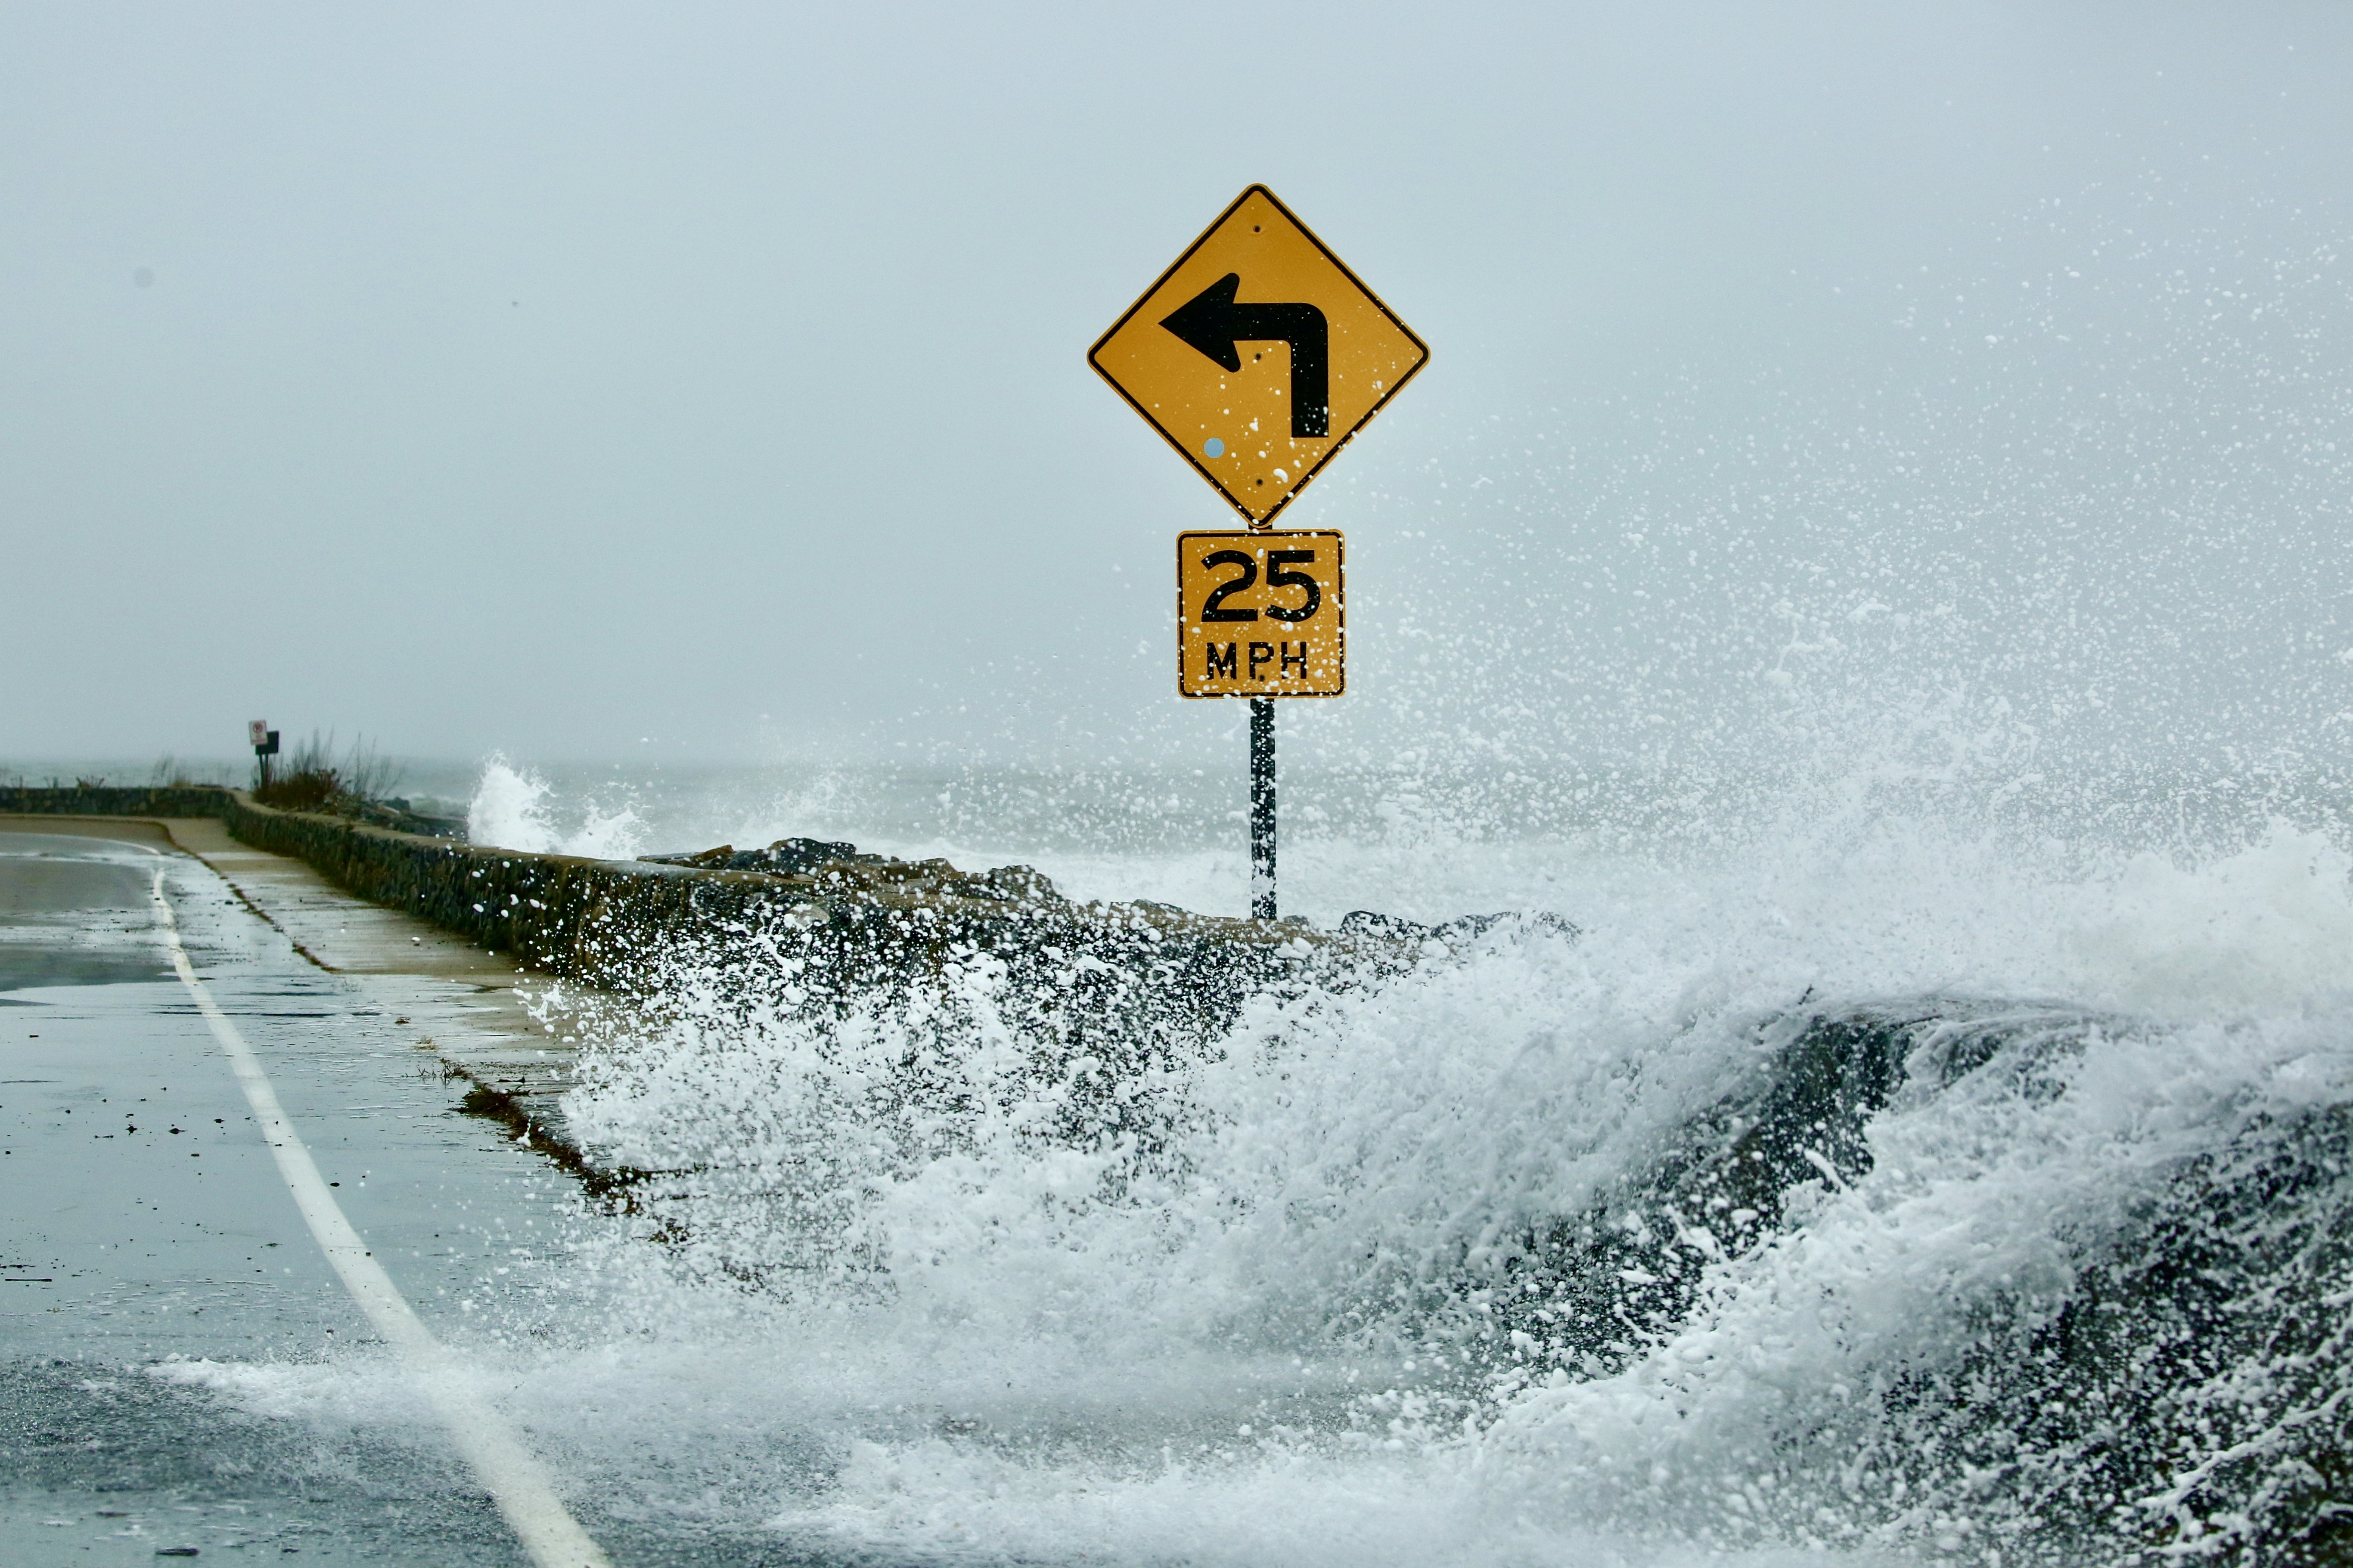 a wave breaks over a seawall and into a roadway.